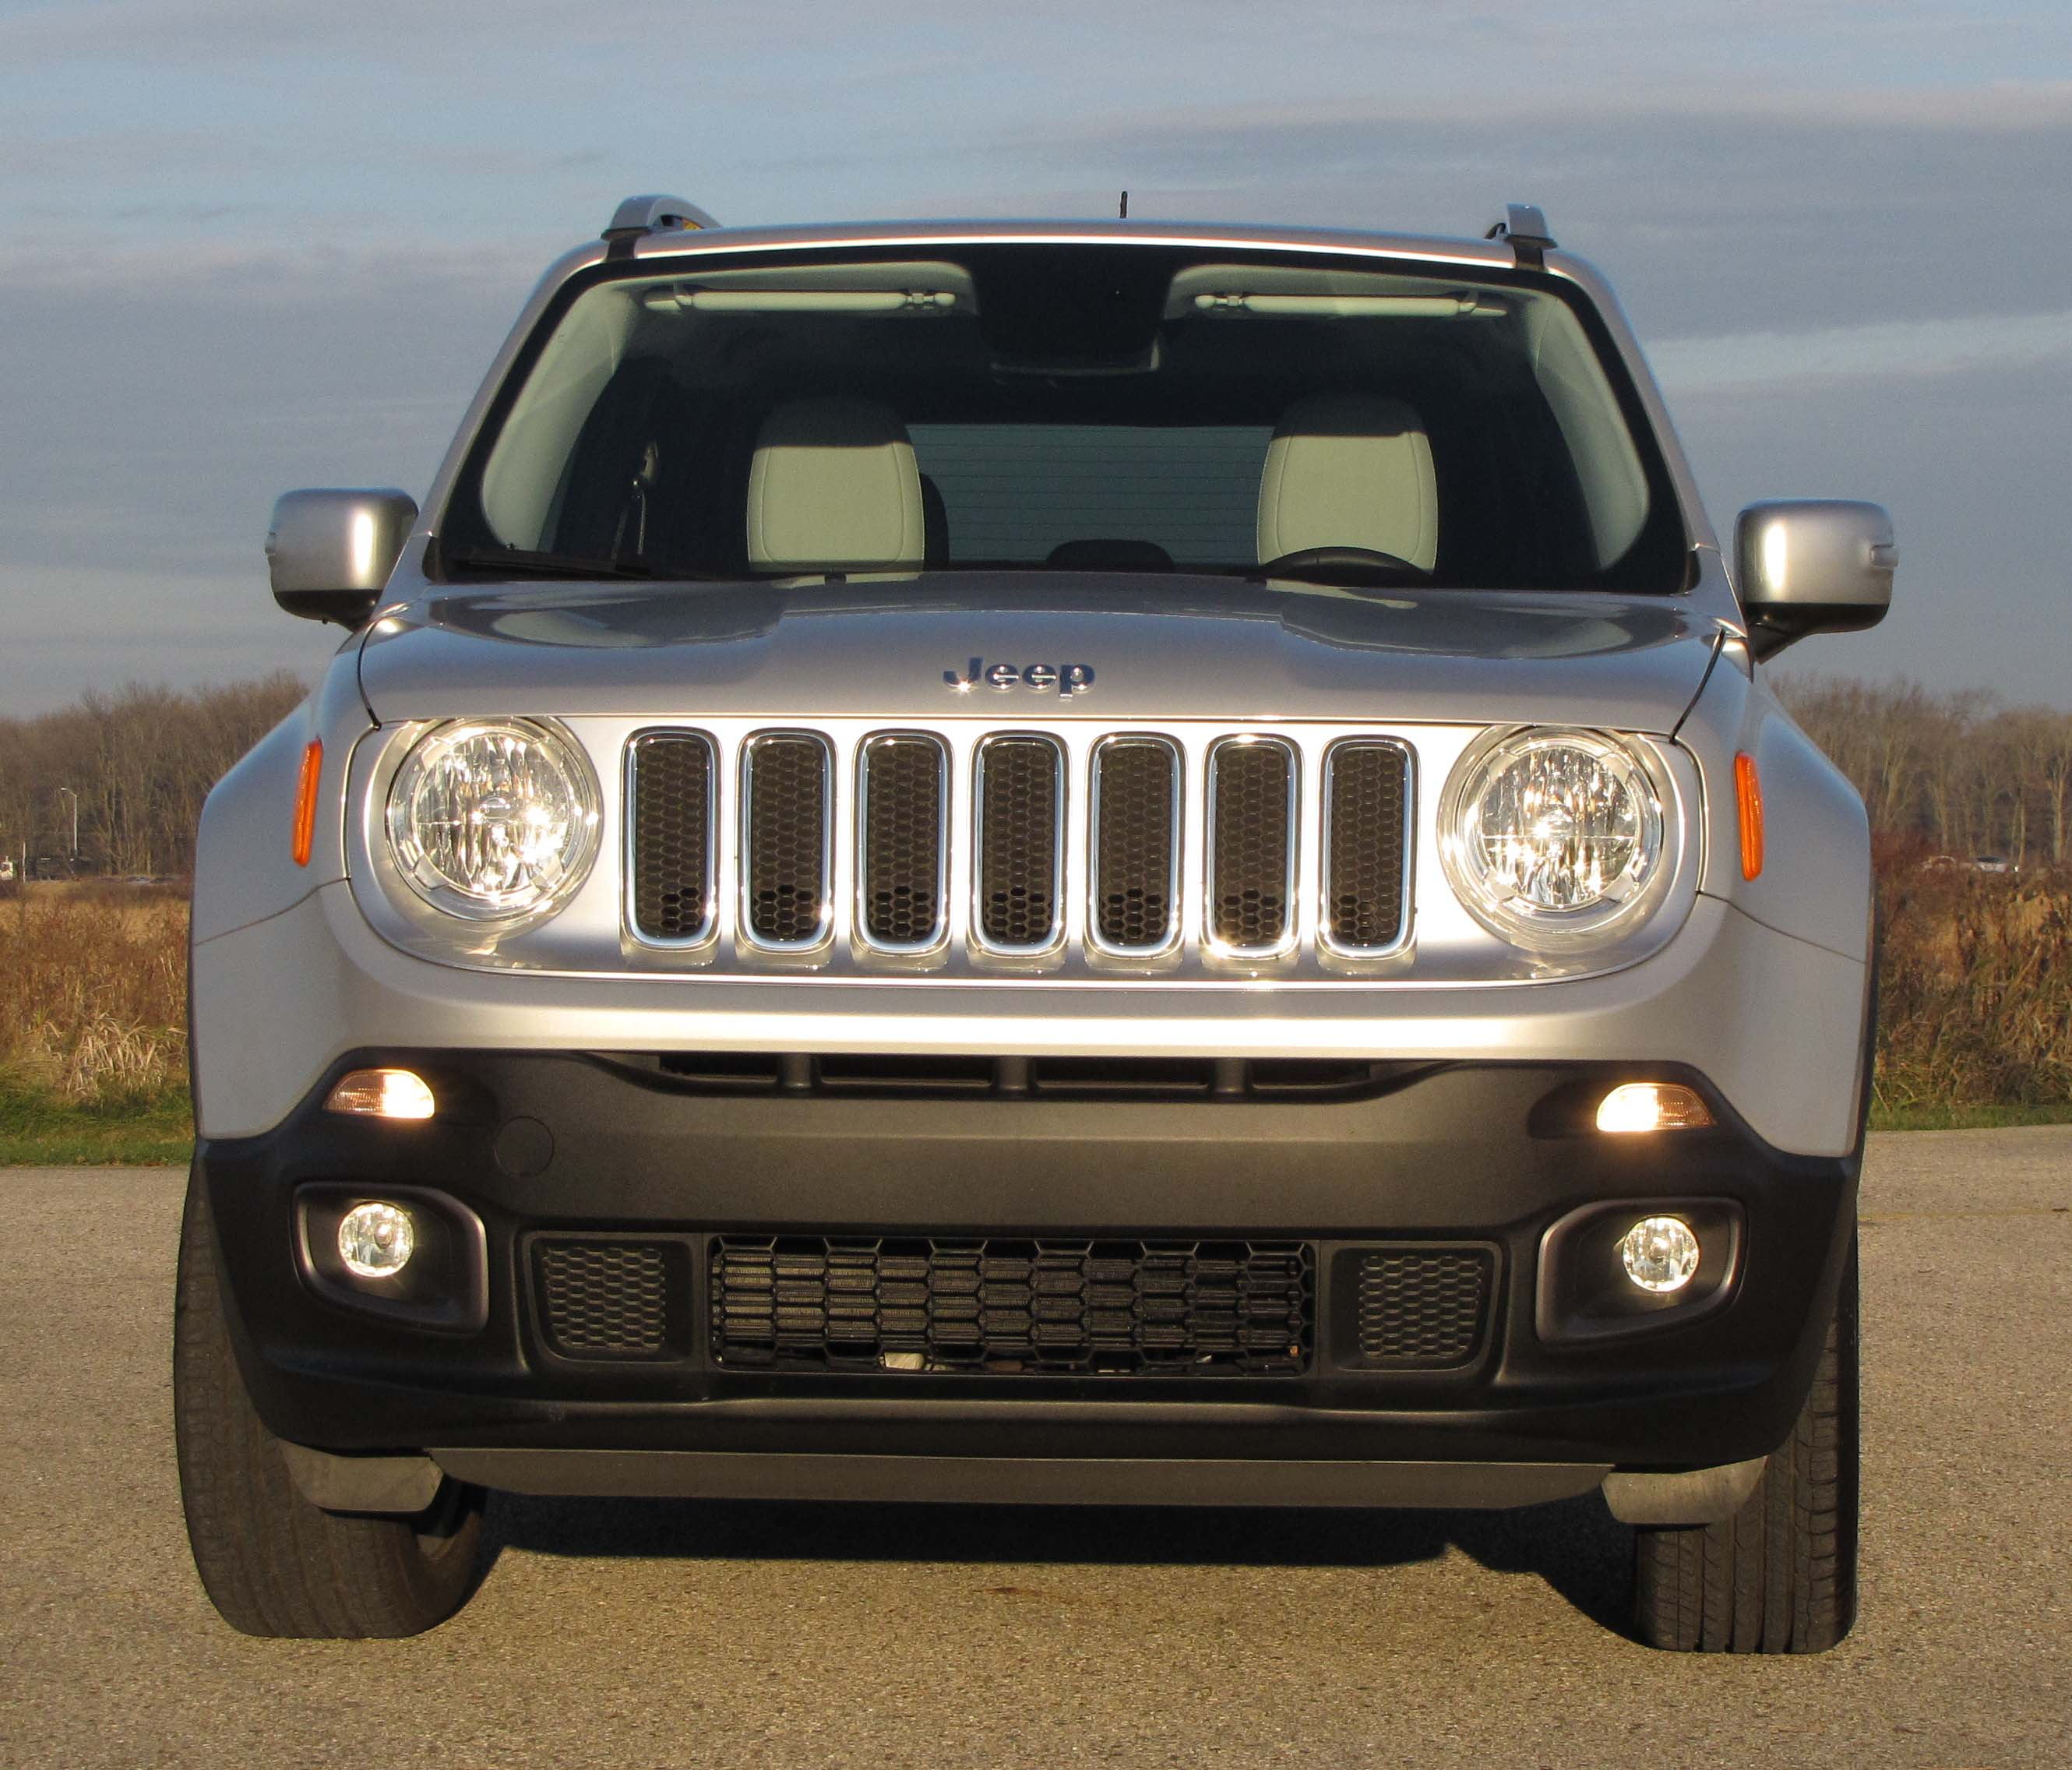 Yet mostly this is a small jeep for folks who like the look but prefer decent gas mileage a lower price tag and the utility of a small sport utility or